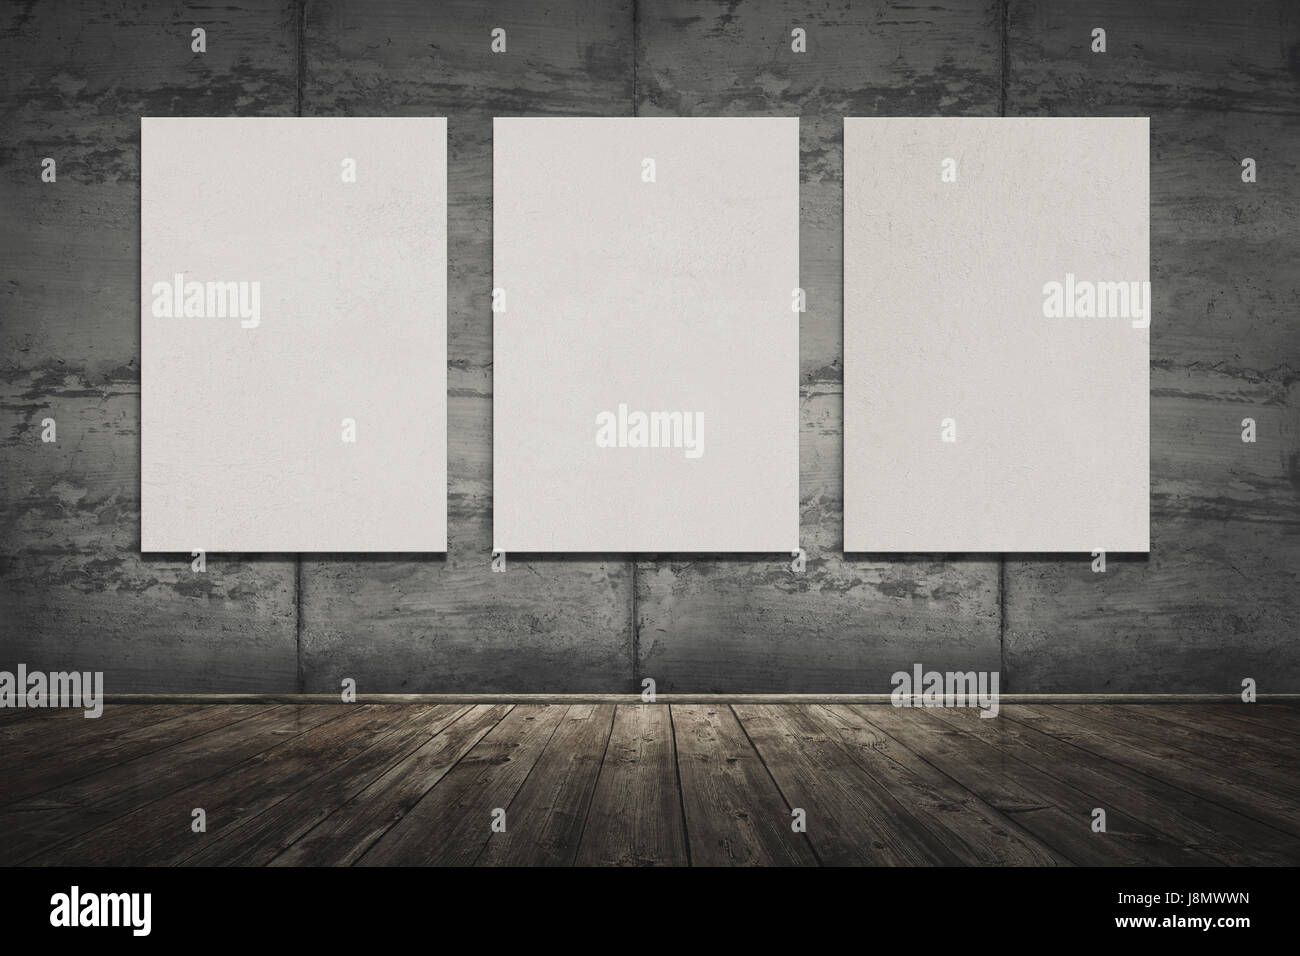 3d illustration of big interior with old wooden floor, concrete wall with seams and three empty frames on the wall. Stock Photo